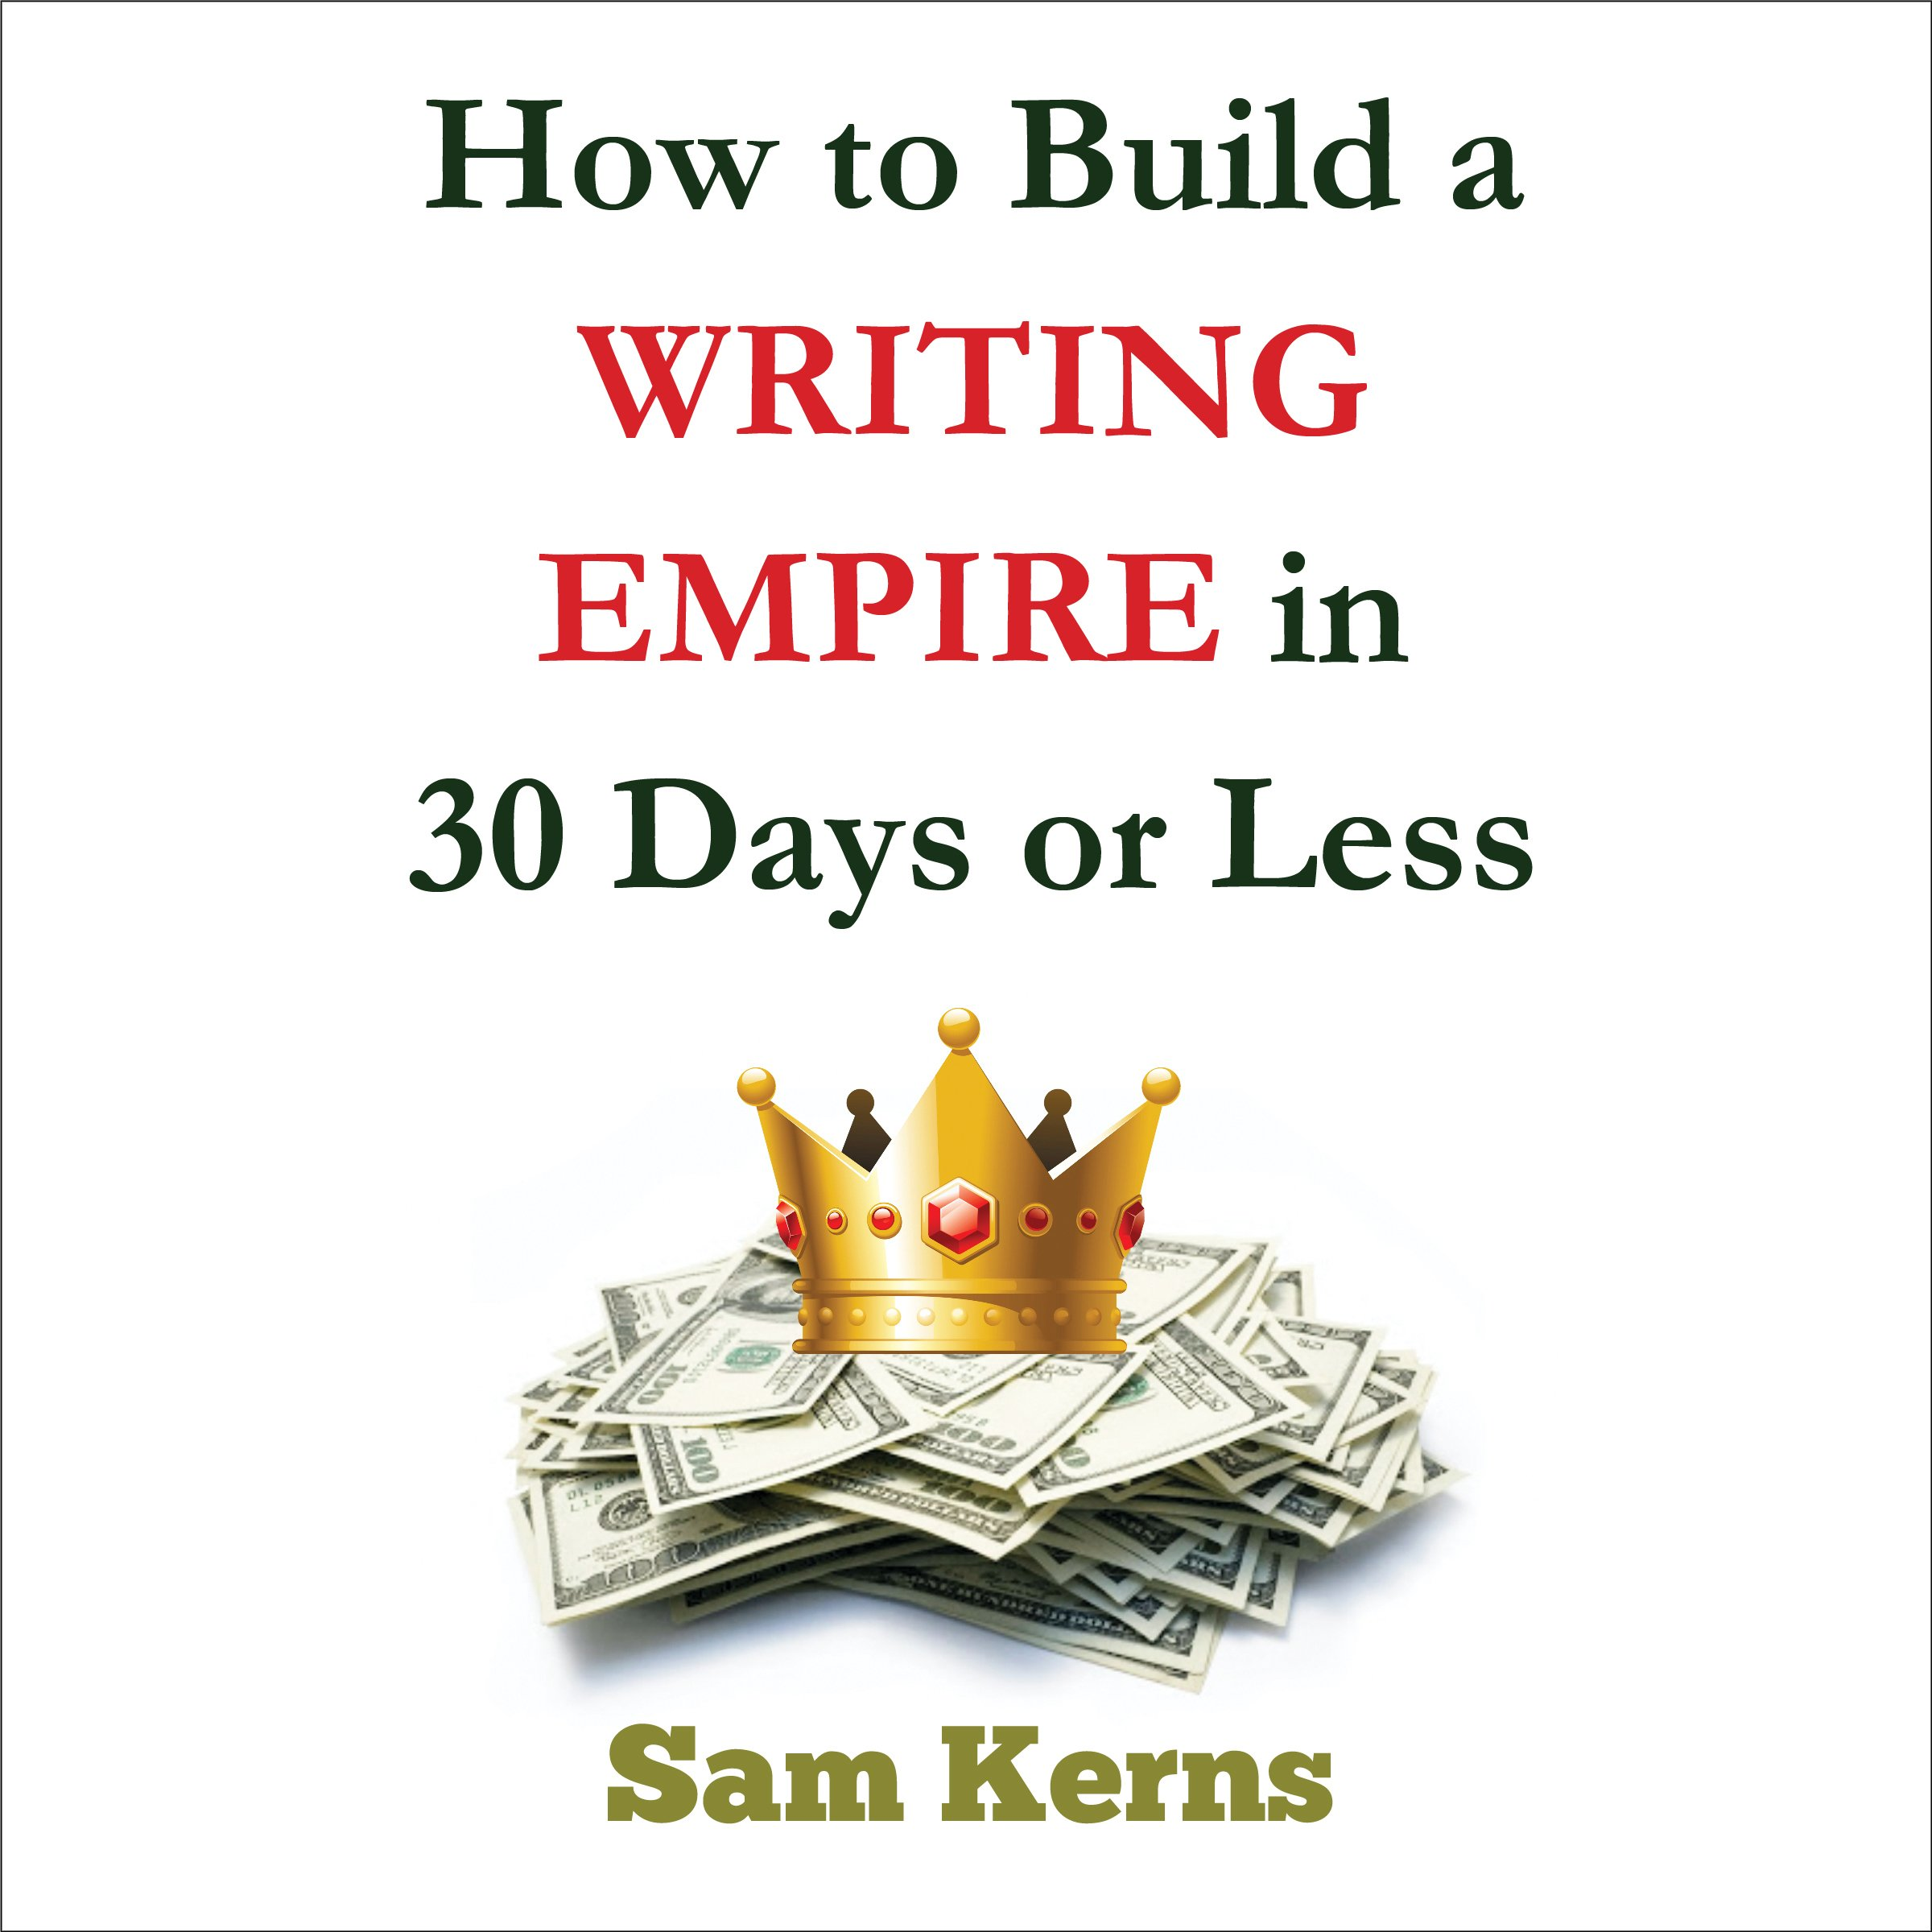 How to Build a Writing Empire in 30 Days or Less: Work from Home Series, Book 2